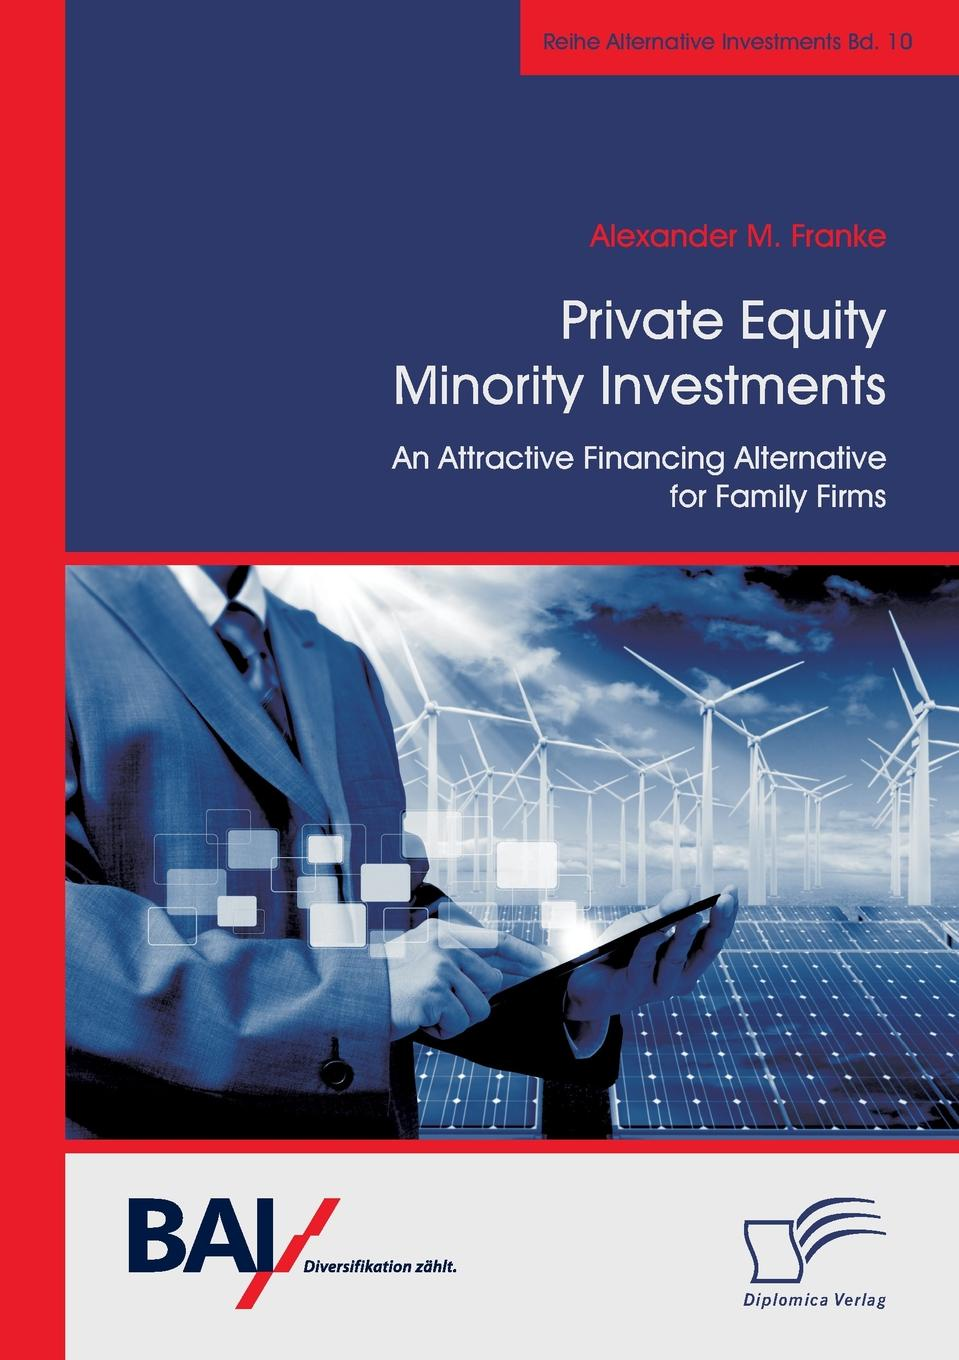 Alexander M. Franke Private Equity Minority Investments. An Attractive Financing Alternative for Family Firms